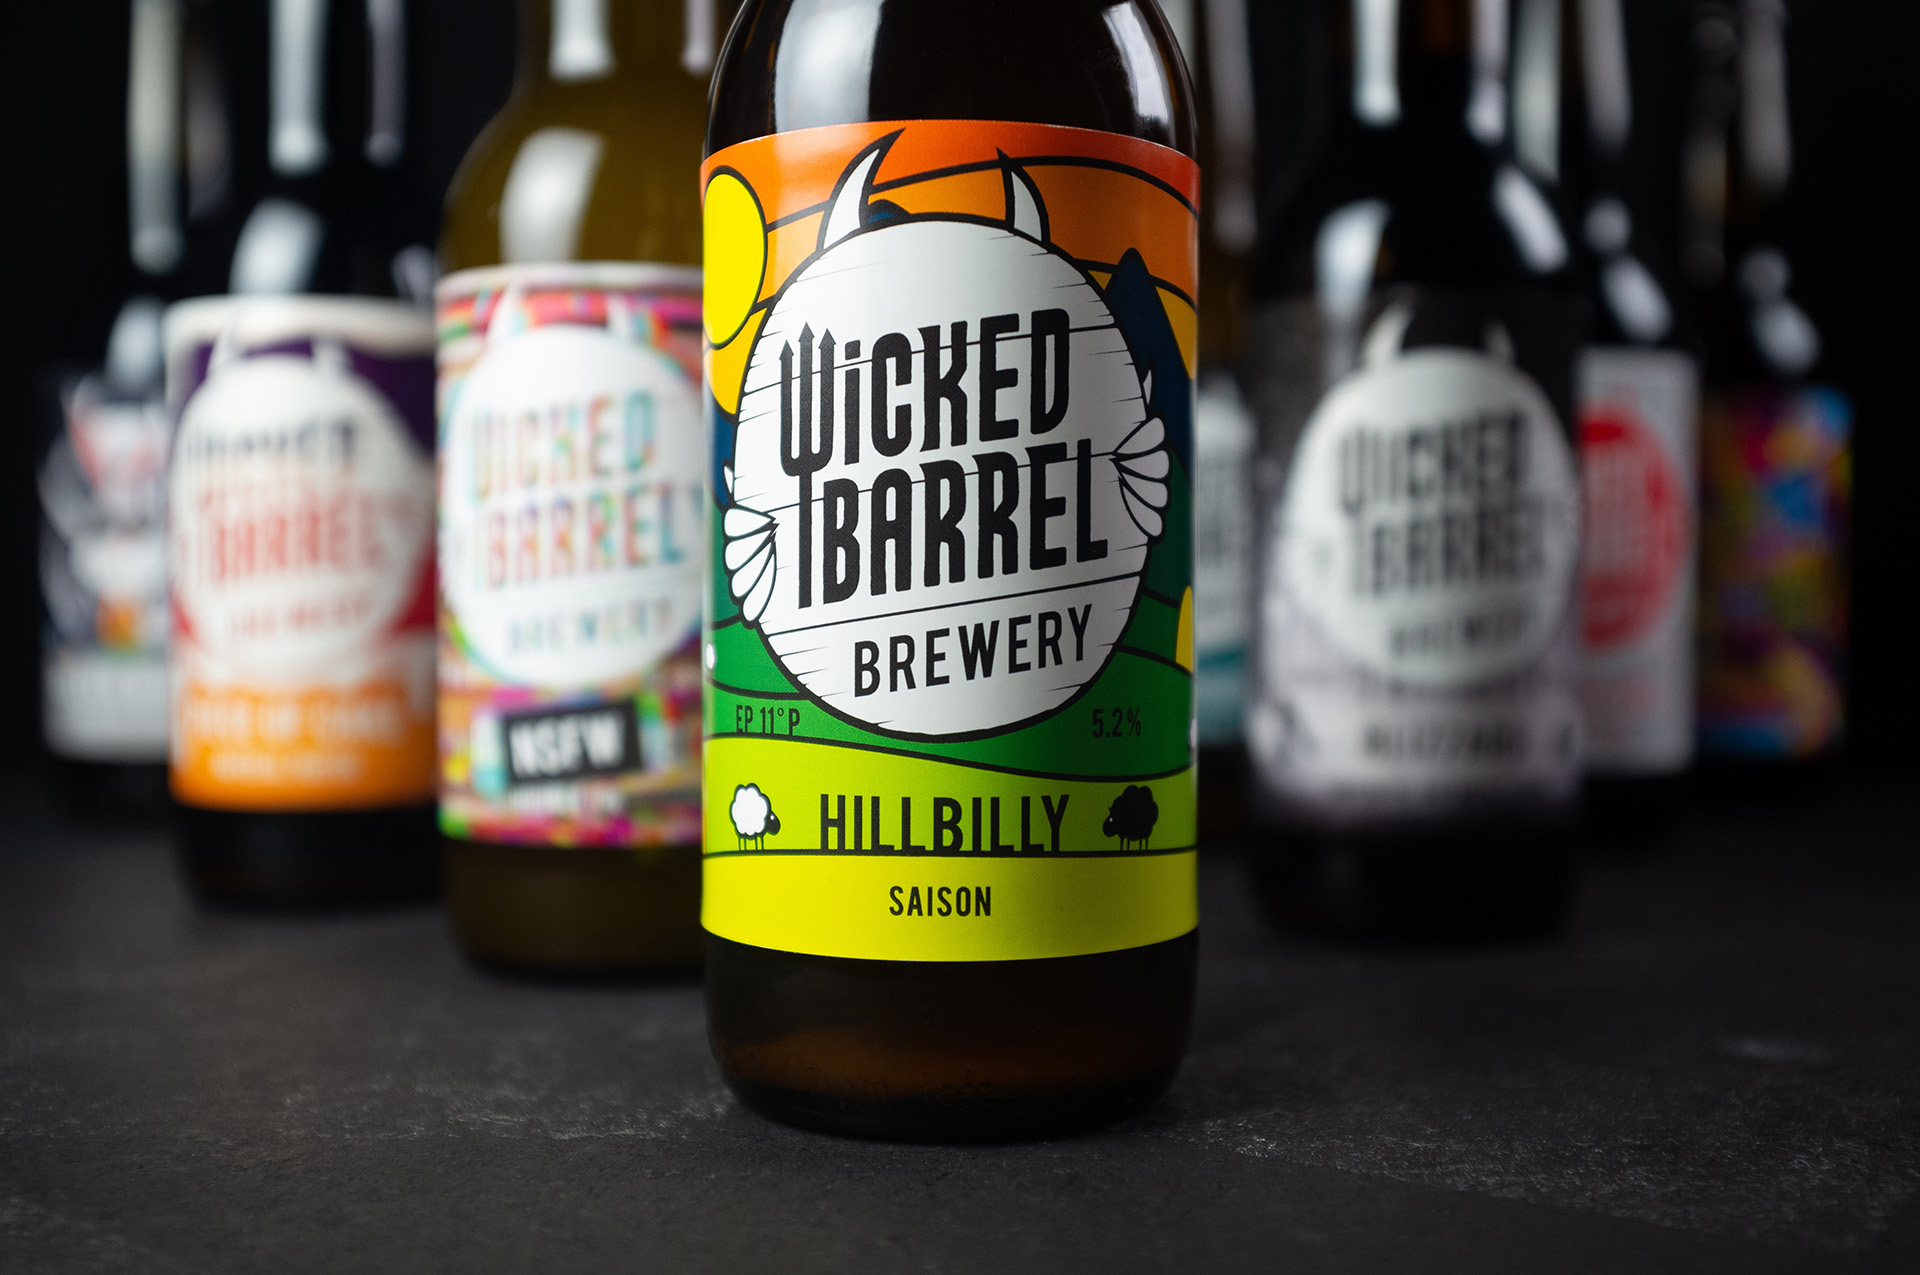 Wicked Barrel Brewery: The Story Continues